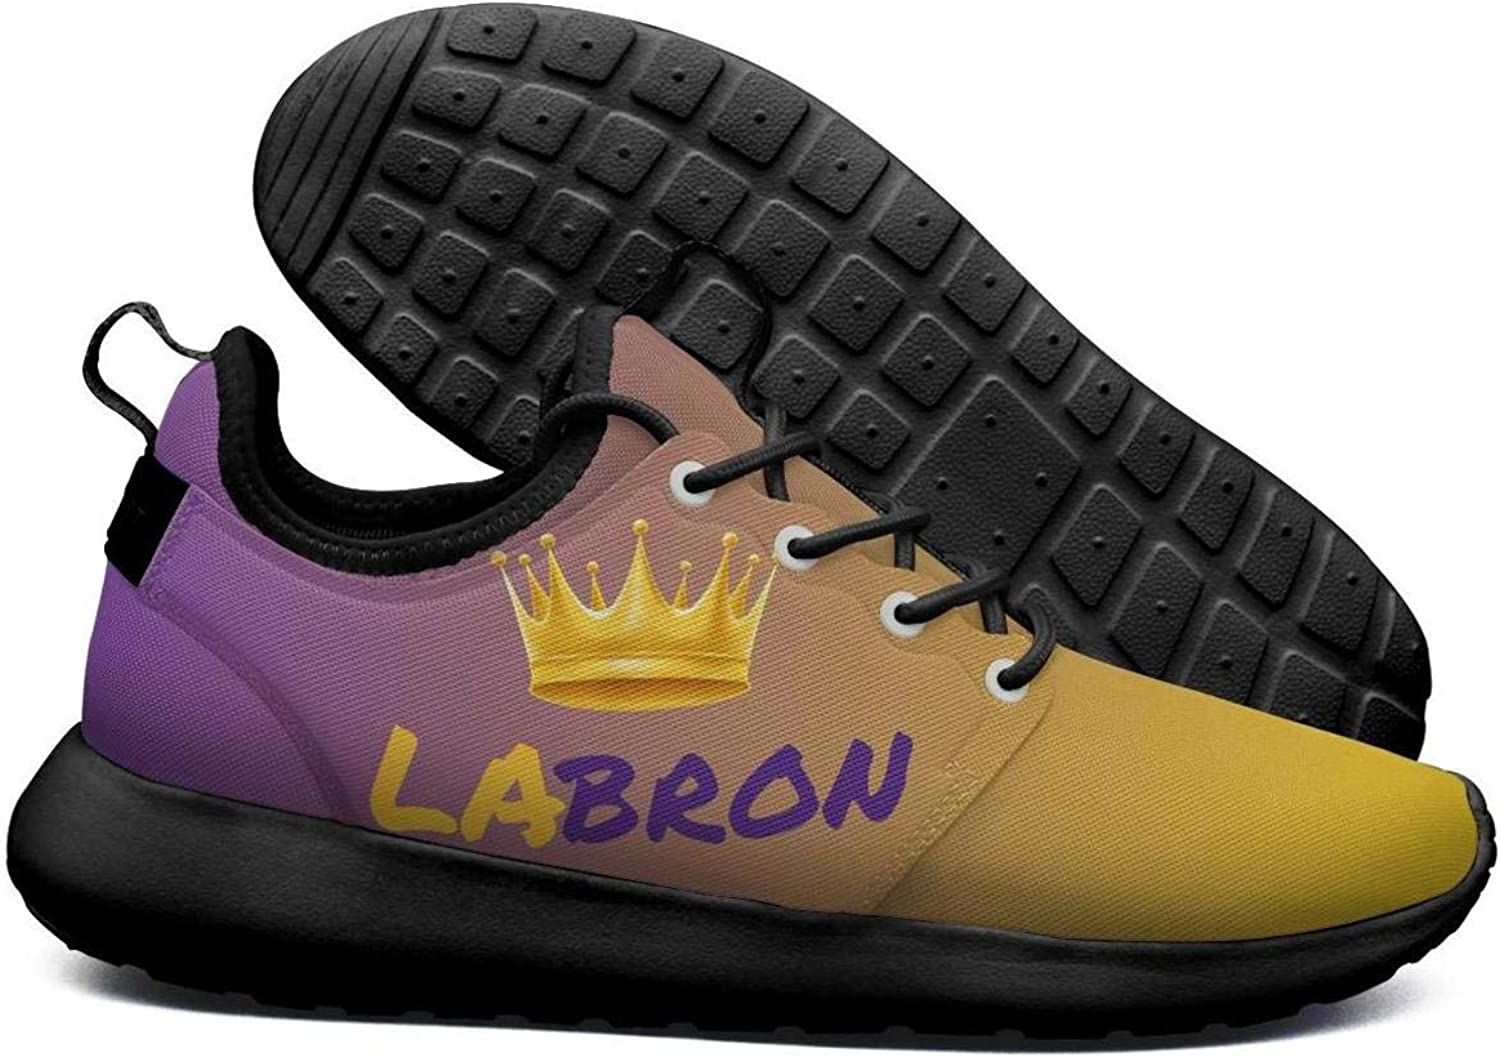 Womens Roshe Two Lightweight labron-gold-Crown Soft Cross-Country Running mesh shoes